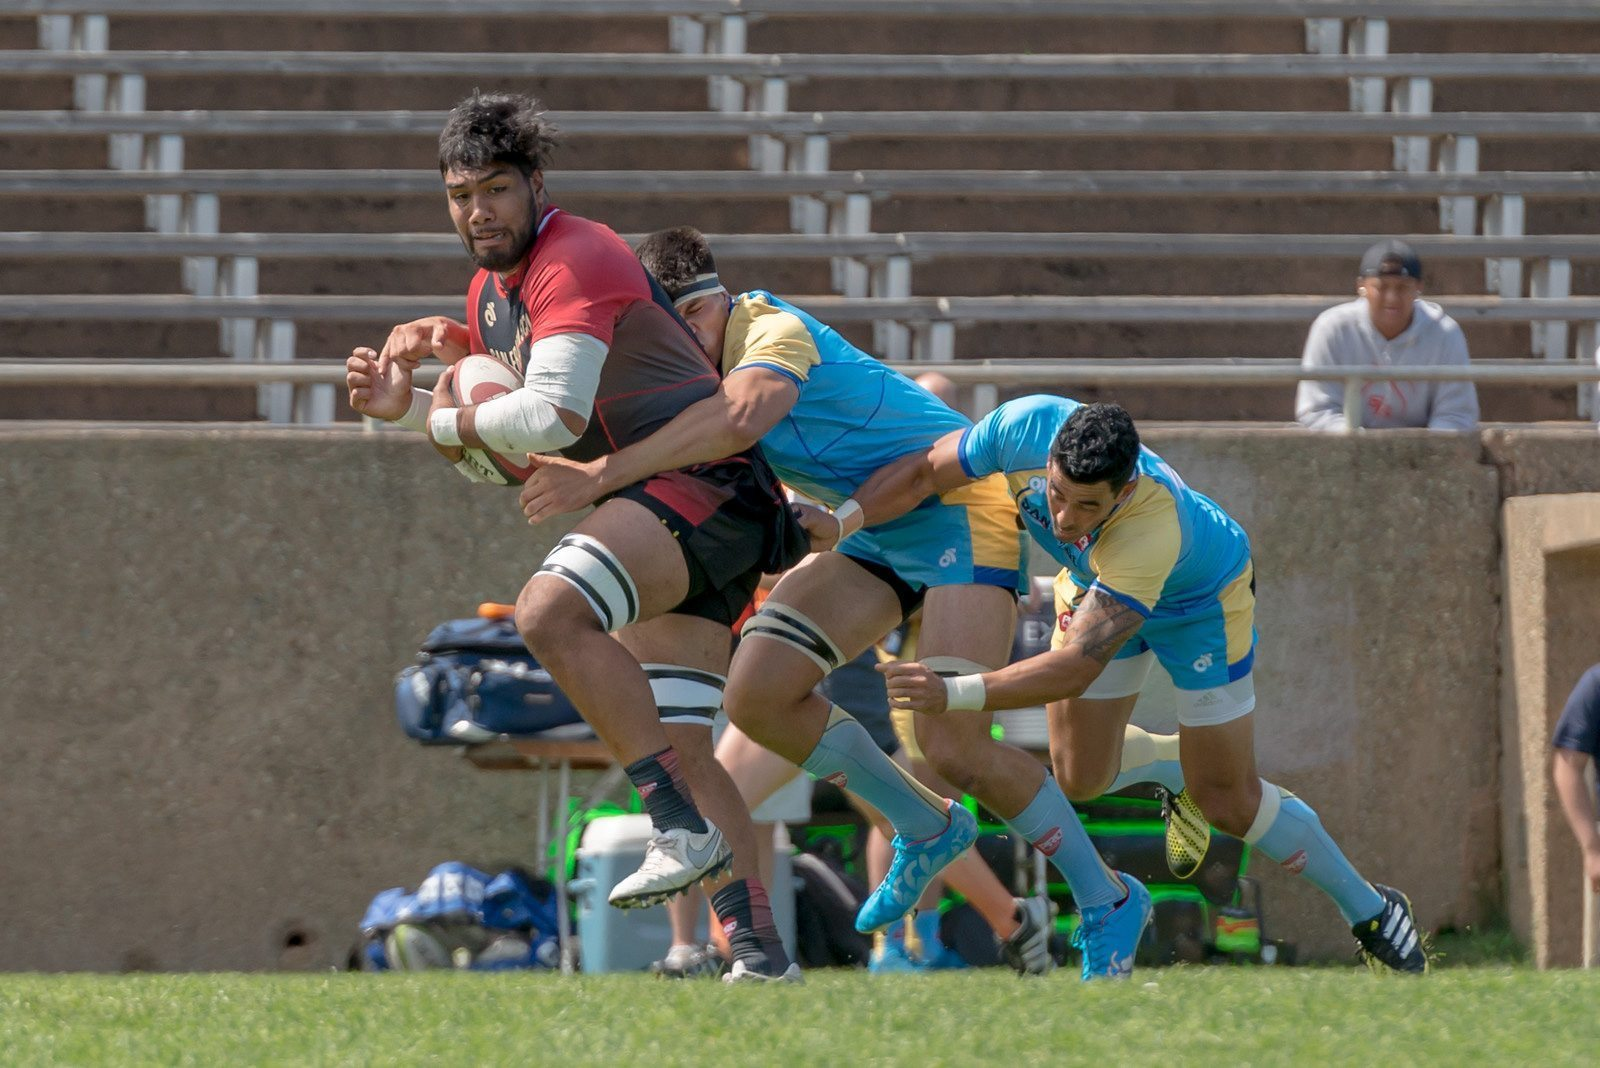 Ohio continues good PRO form in win over Sacramento; San Diego outduels San Francisco